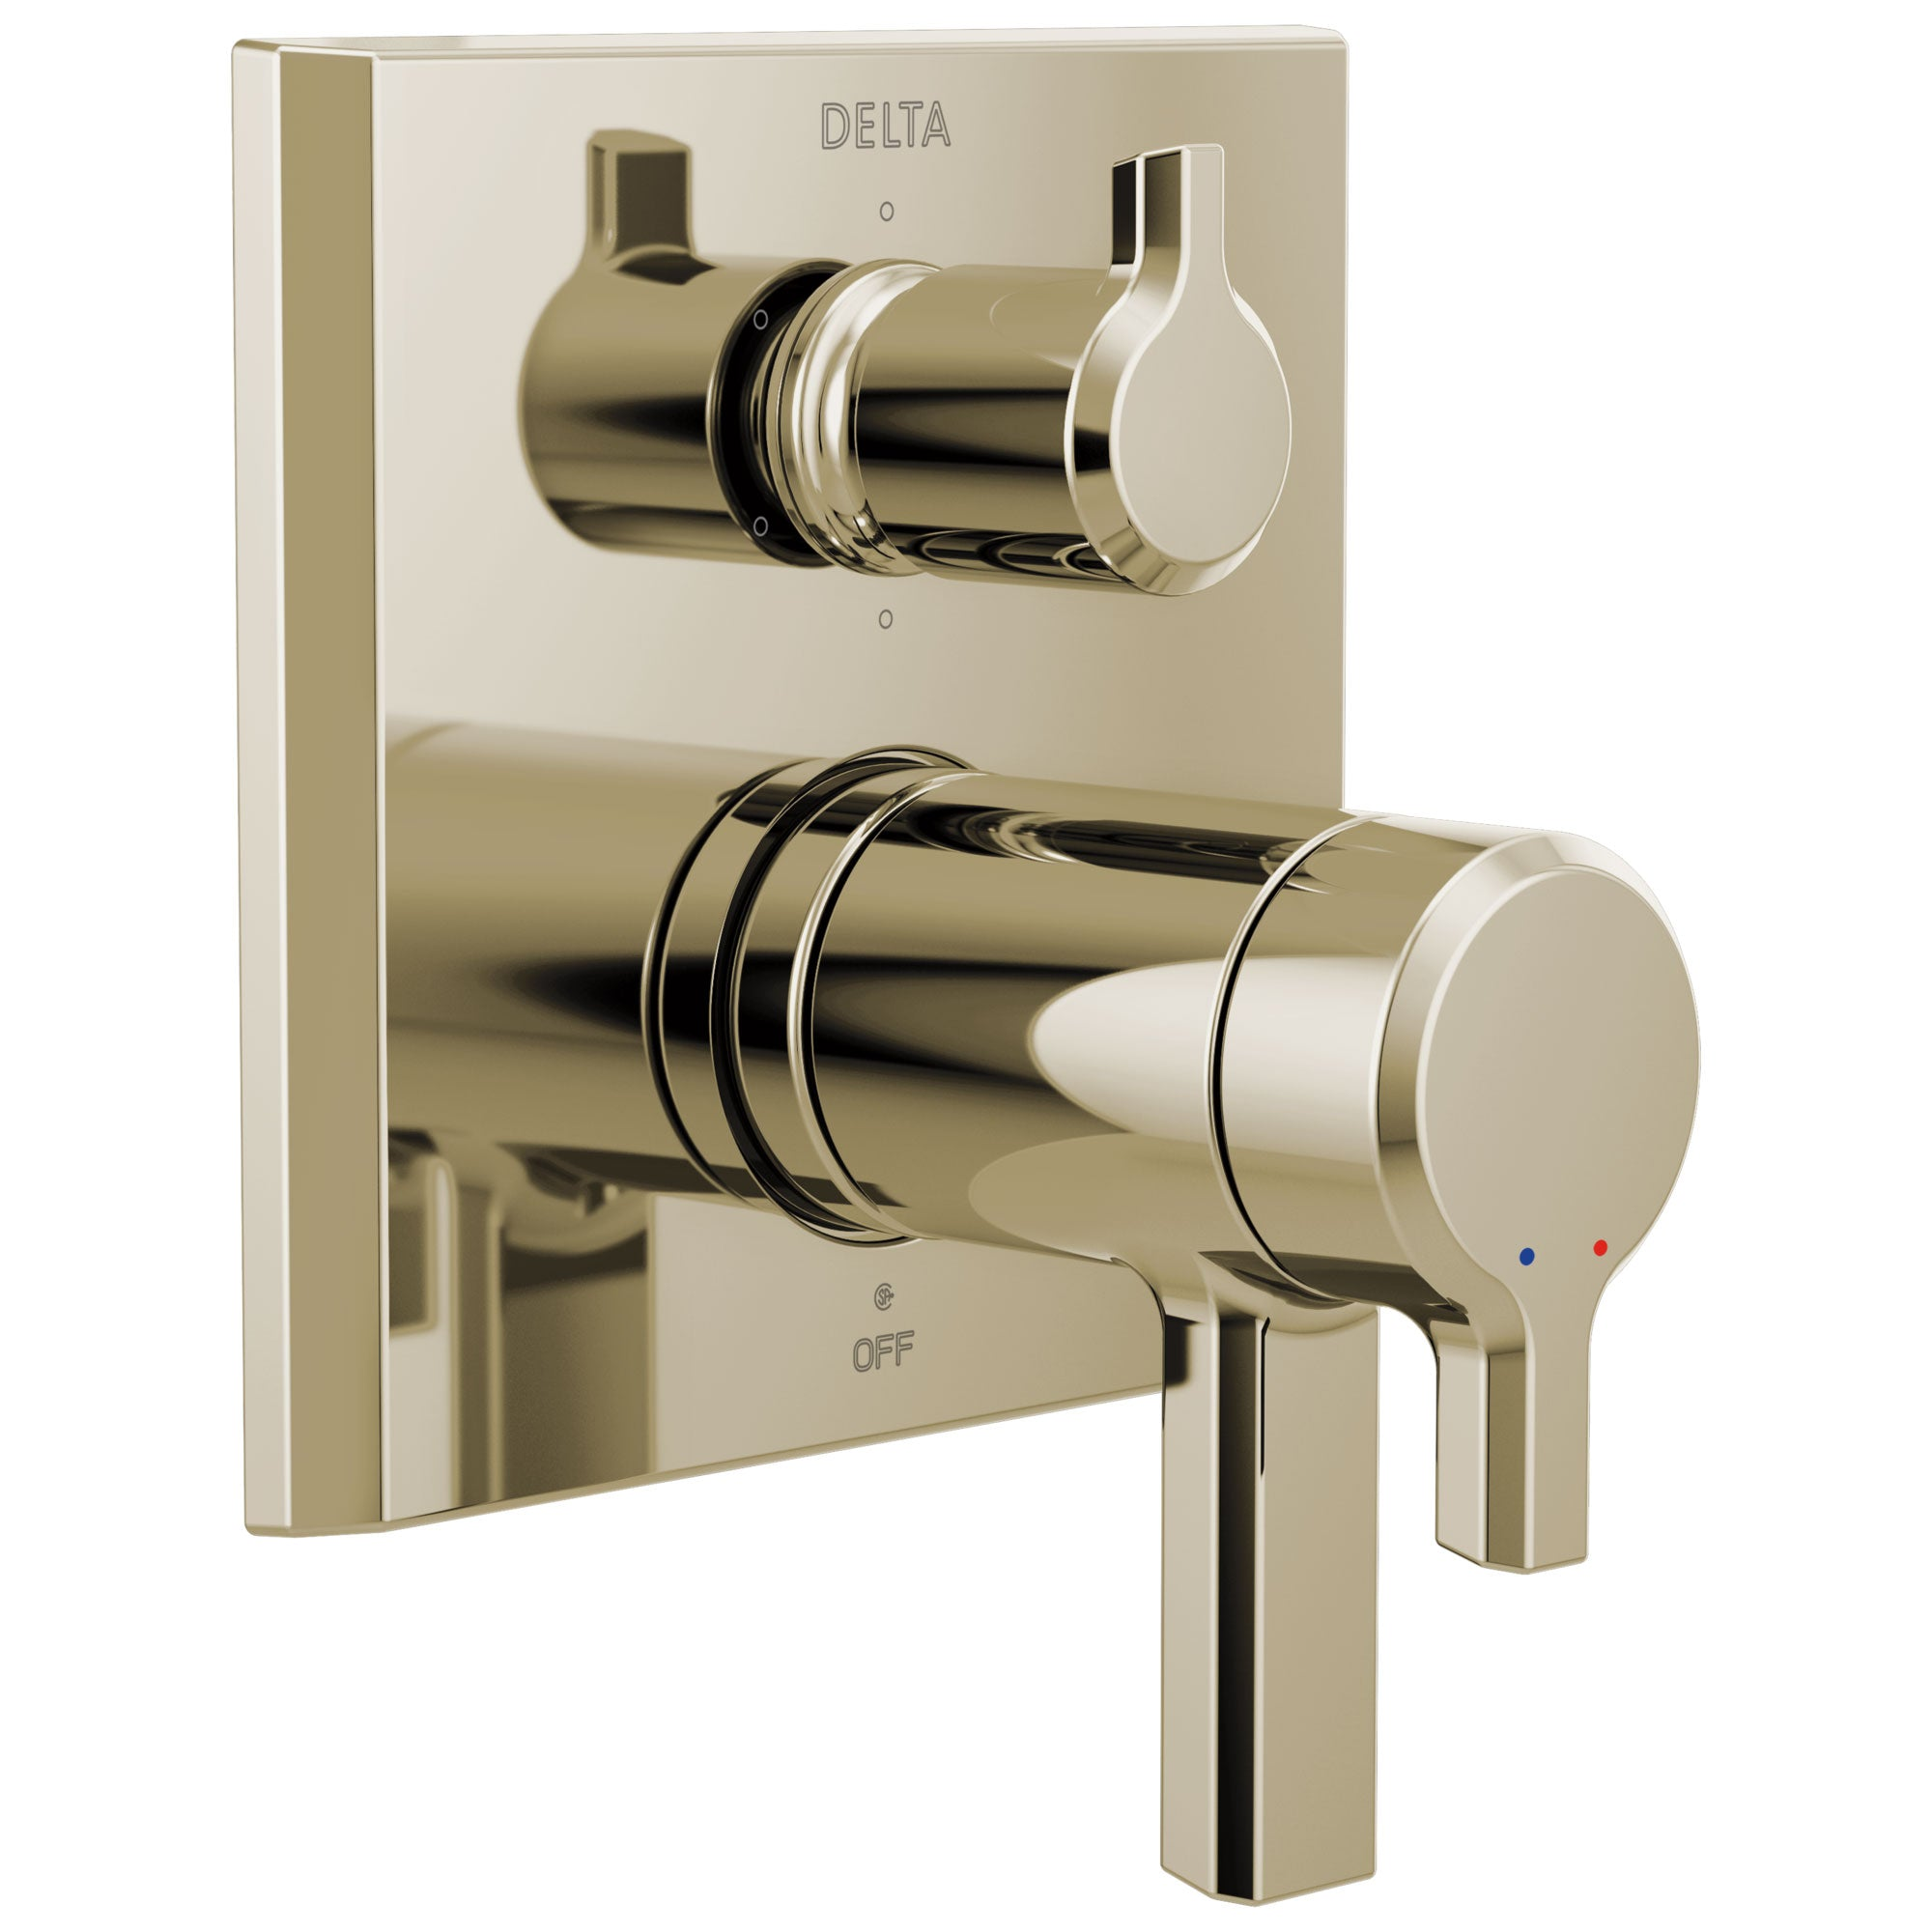 Delta Pivotal Polished Nickel Finish Thermostatic 17T Shower System Control with 6-Setting Integrated Diverter Includes Rough Valve and Handles D3655V